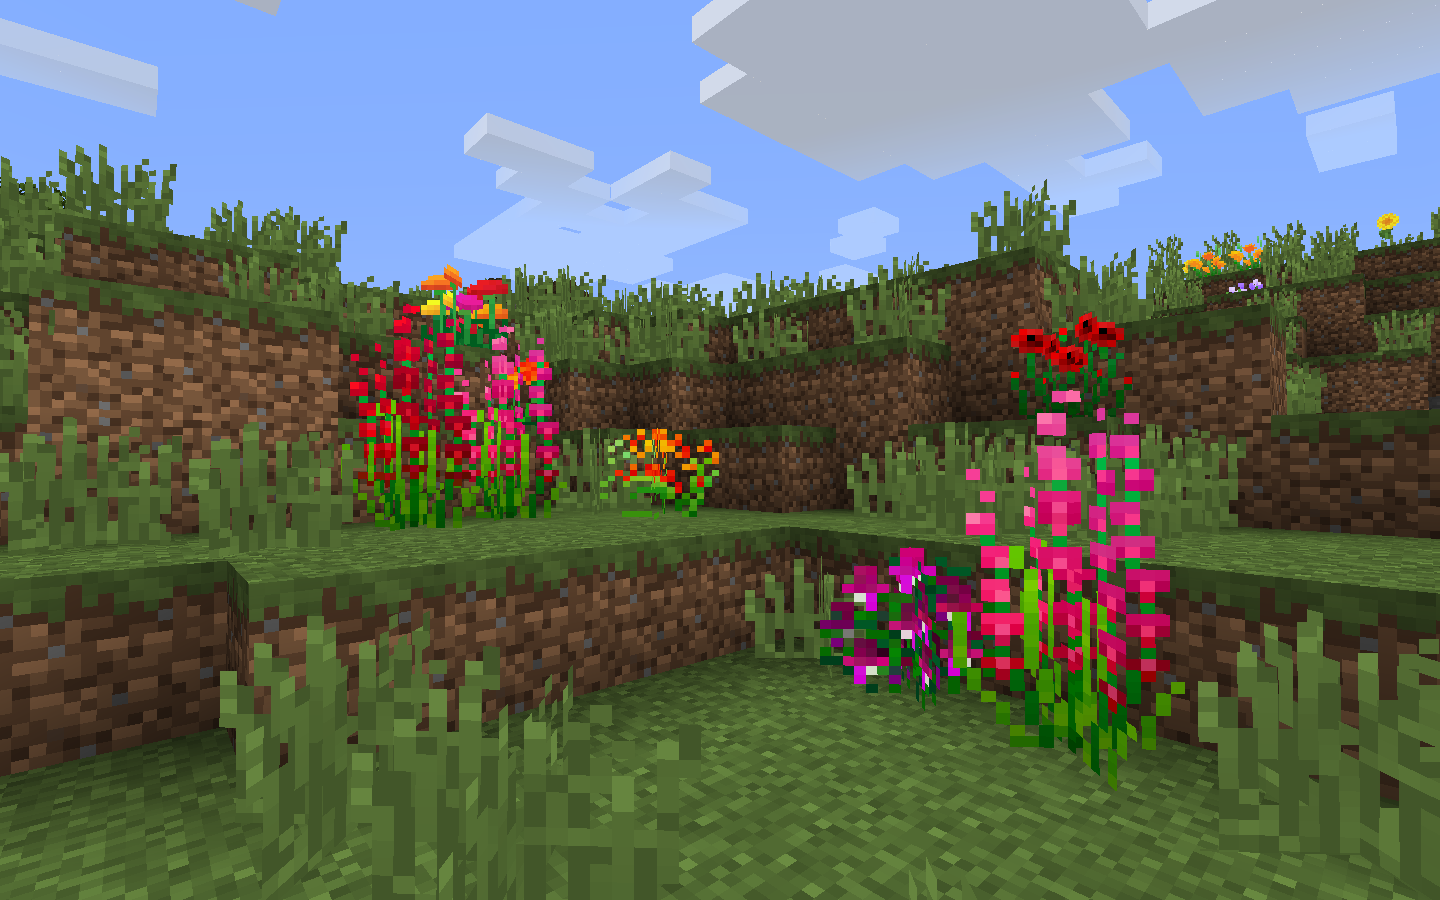 Images - Ferdinand's Flowers - Mods - Projects - Minecraft